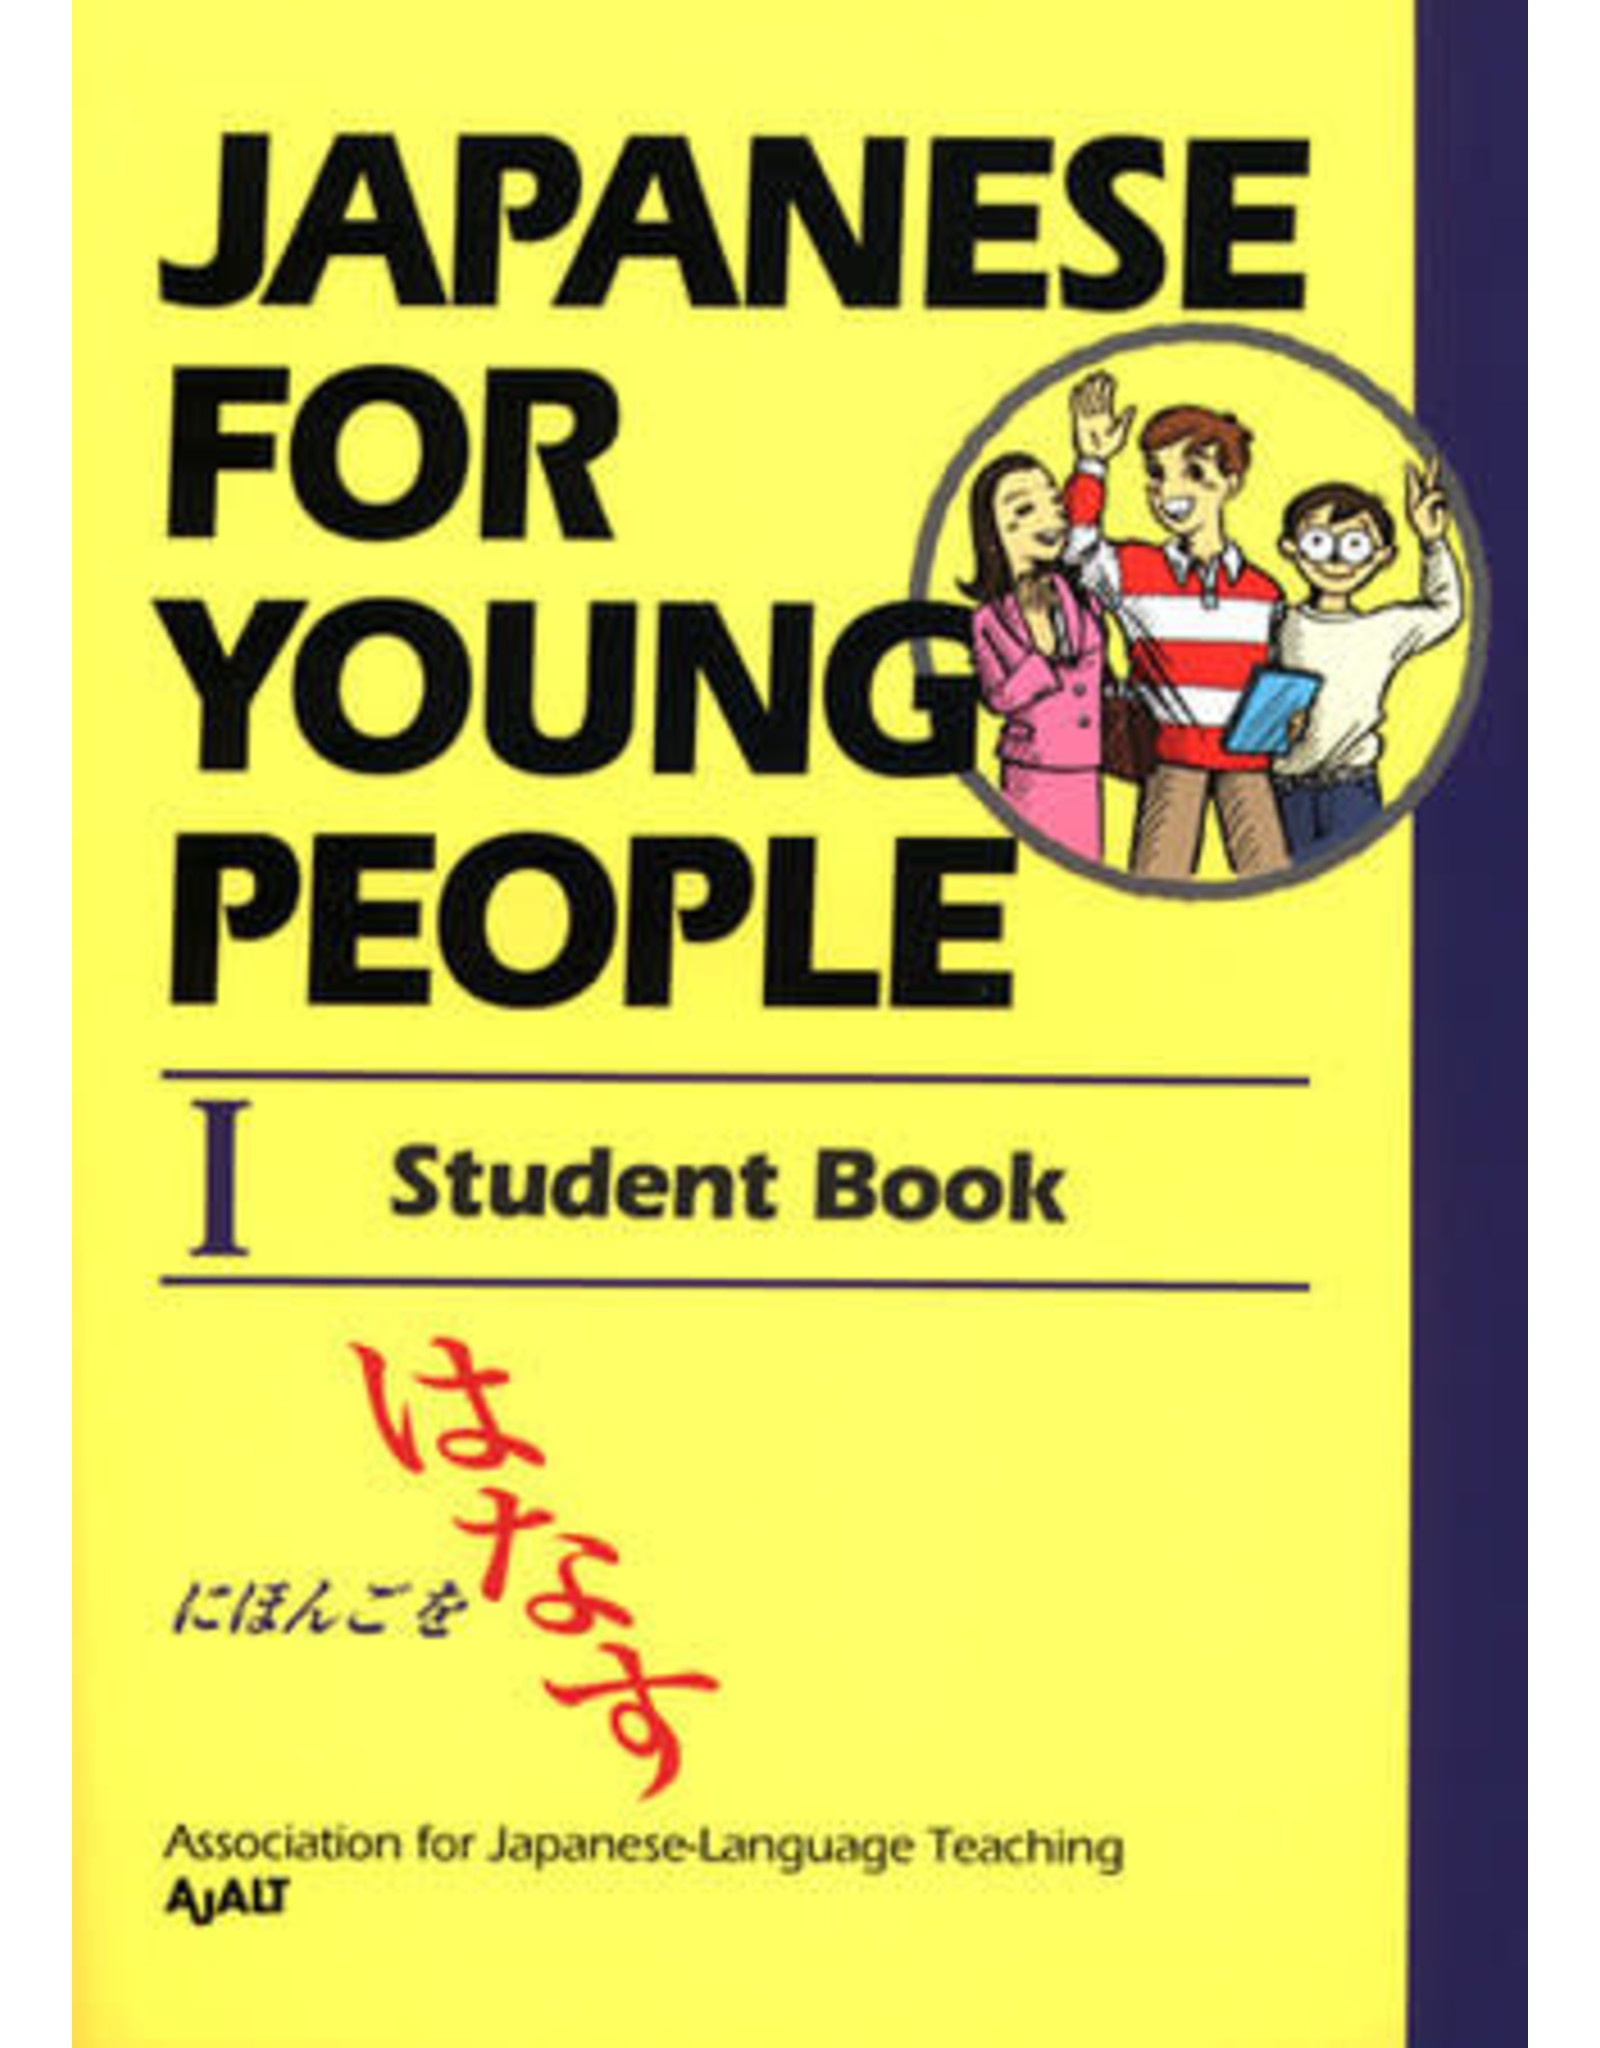 JAPANESE FOR YOUNG PEOPLE 1 STUDENT BOOK HASASU